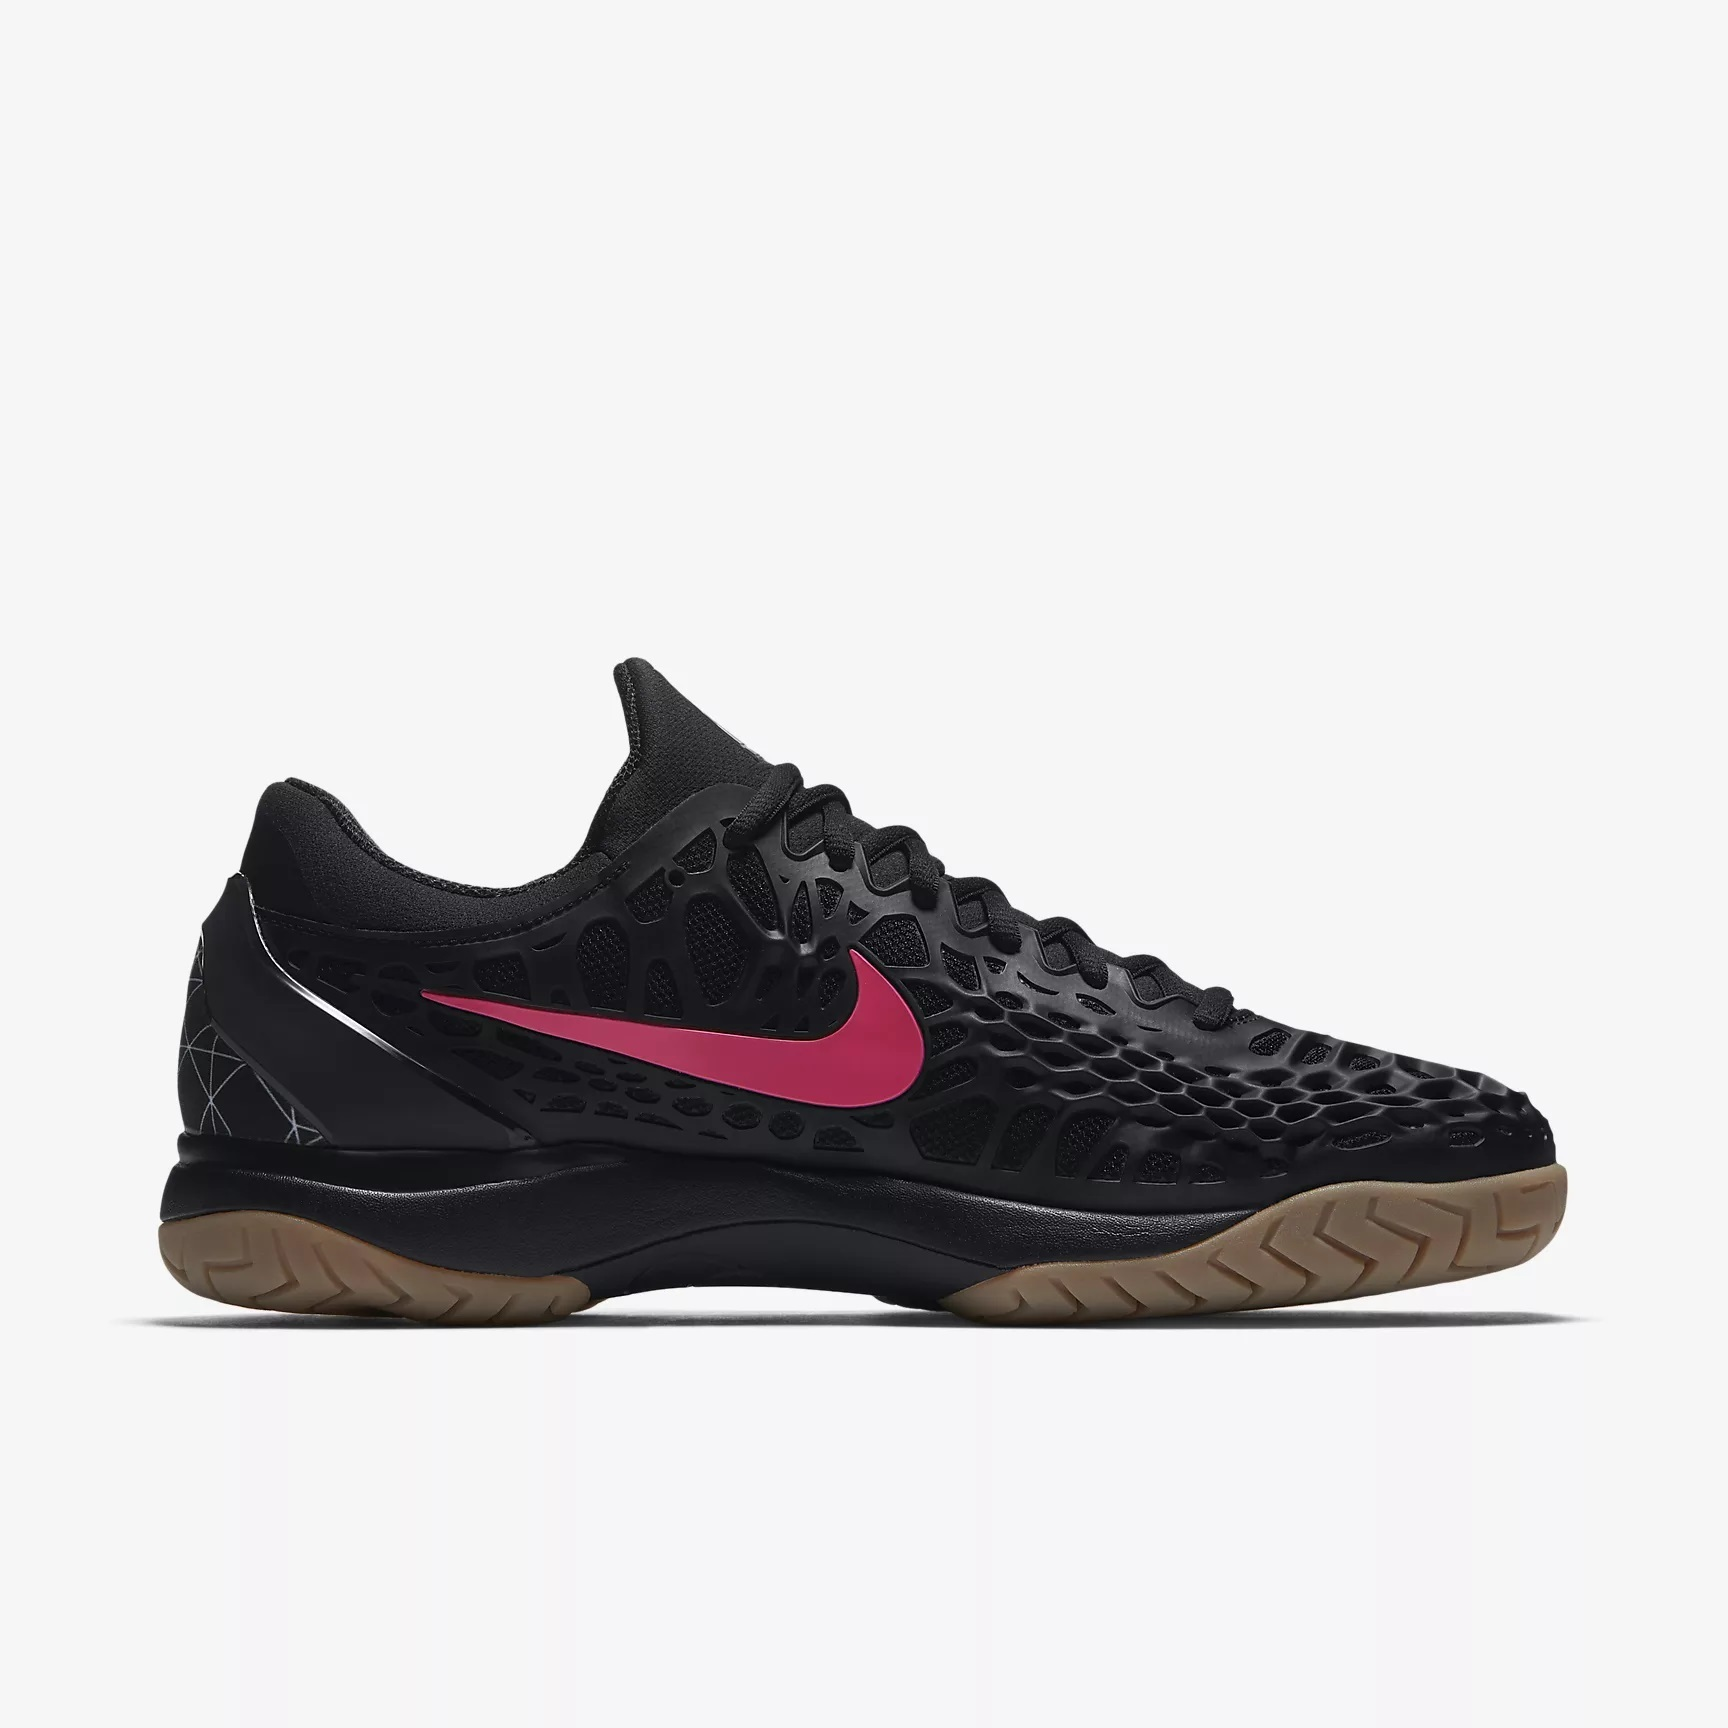 【送料込み】メンズ NIKE AIR ZOOM CAGE 3 HARD COURT PREMIUM